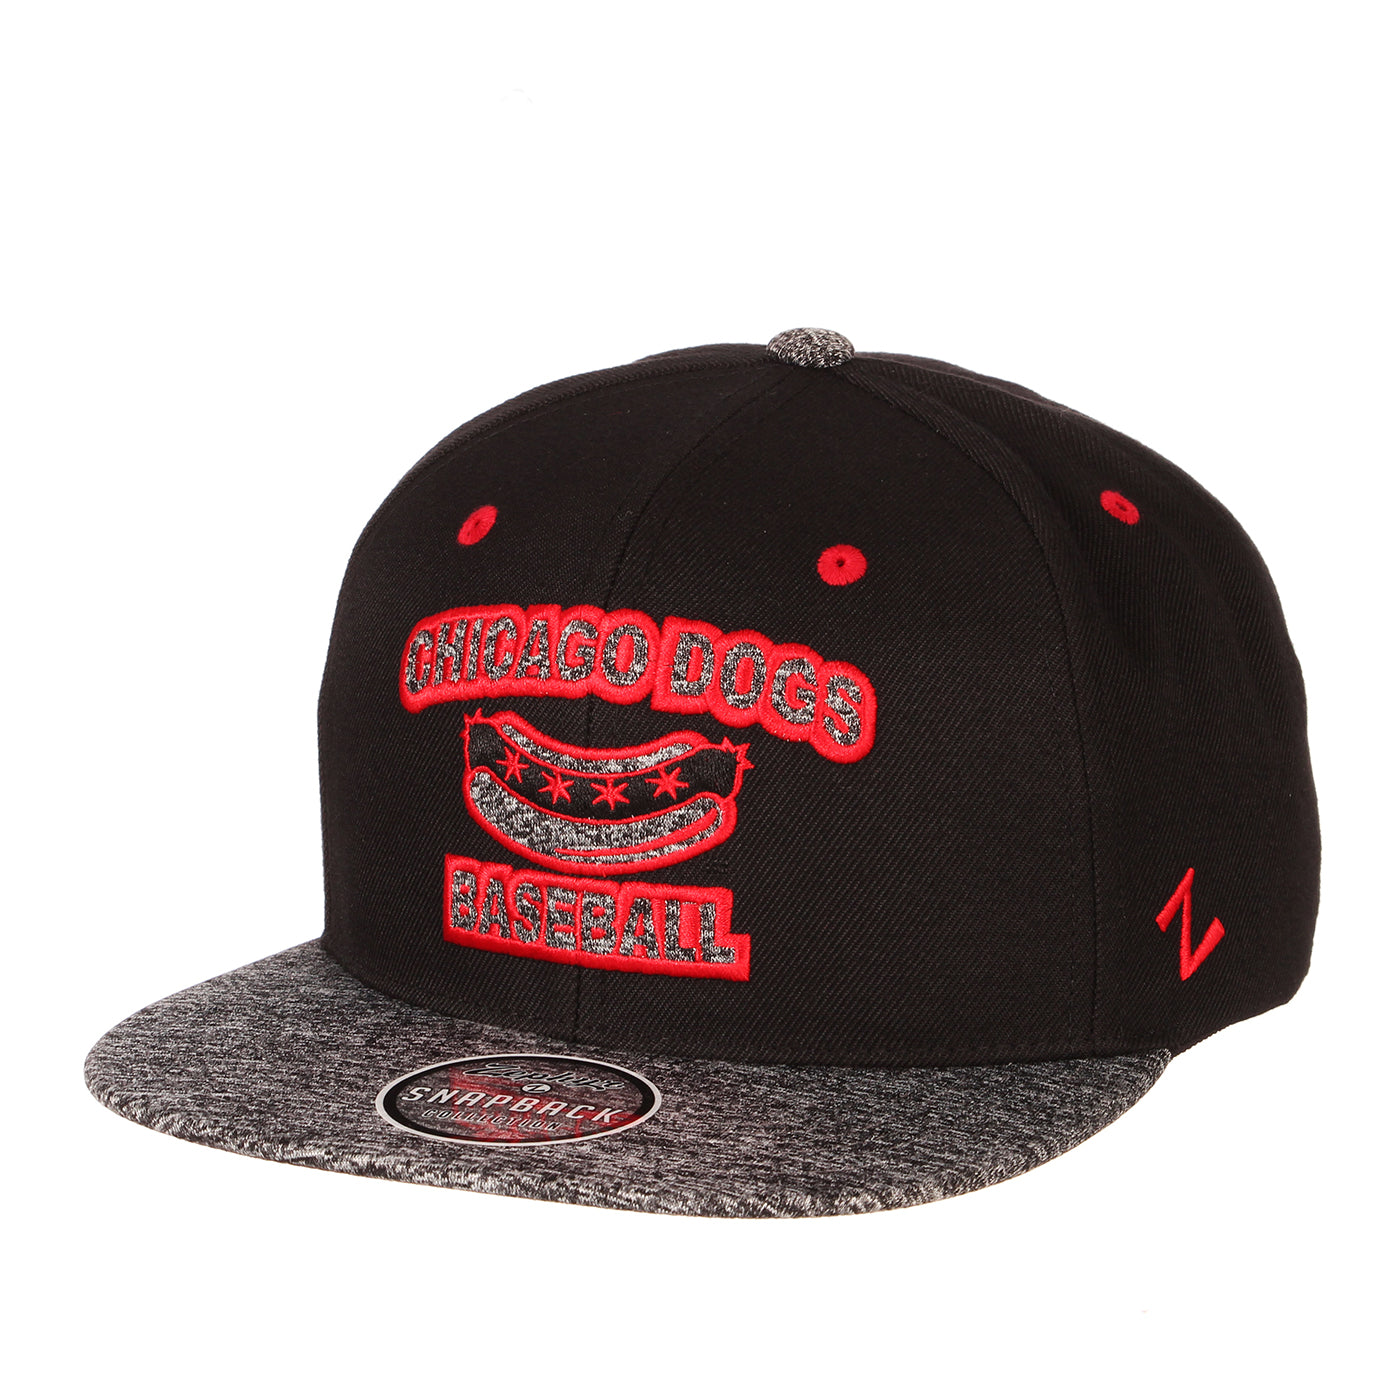 Chicago Dogs Zephyr Status Flat Brim Adjustable Snapback Hat - Black/Red